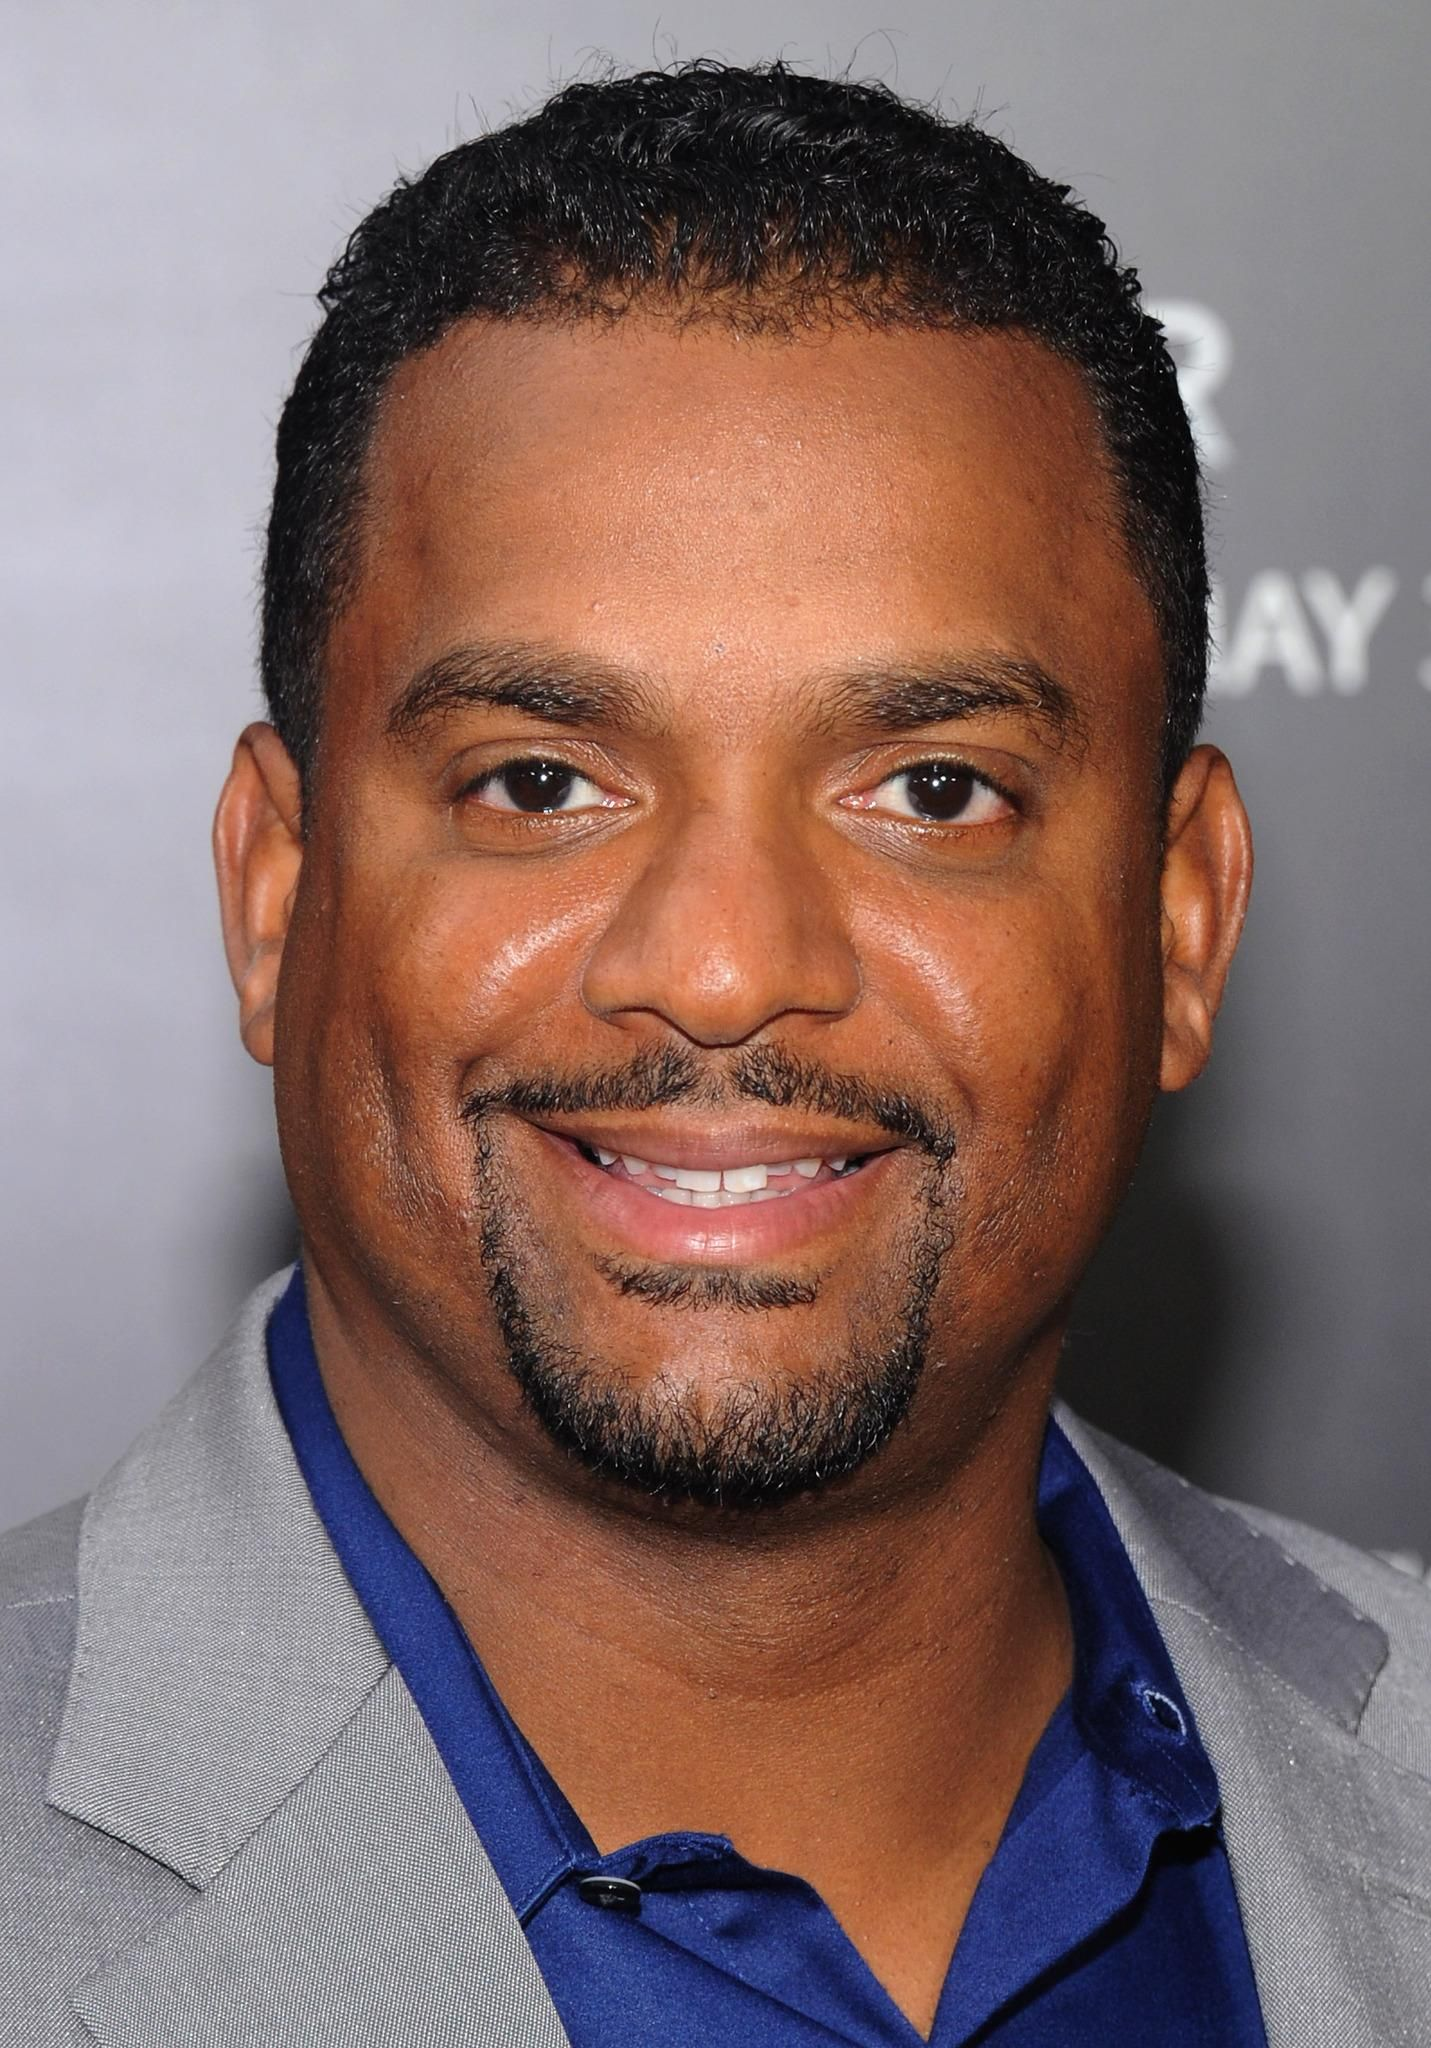 Born September 21st 1971 Alfonso Ribeiro is an American